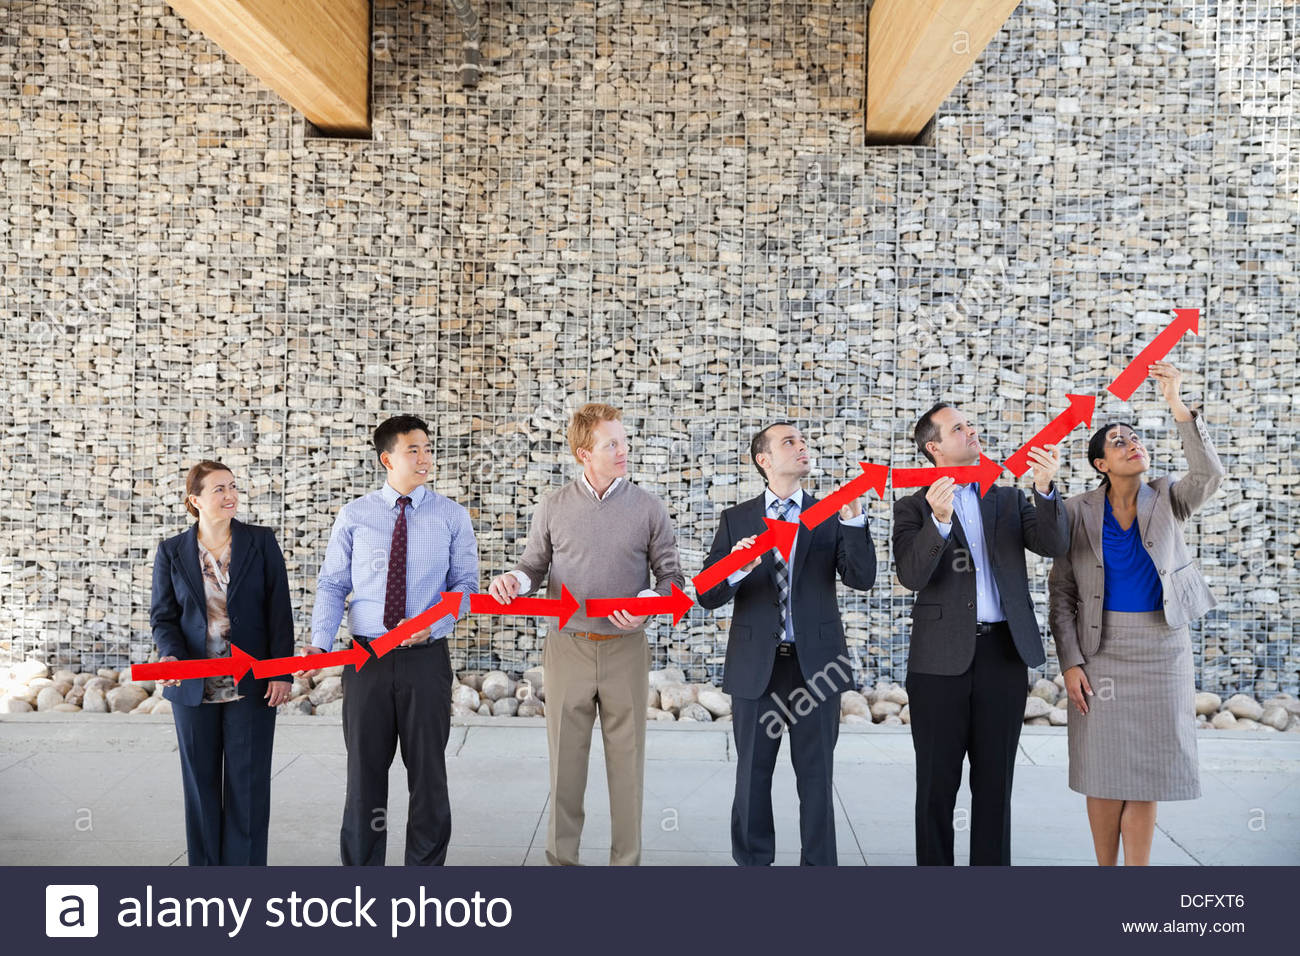 Business people forming upward arrow - Stock Image